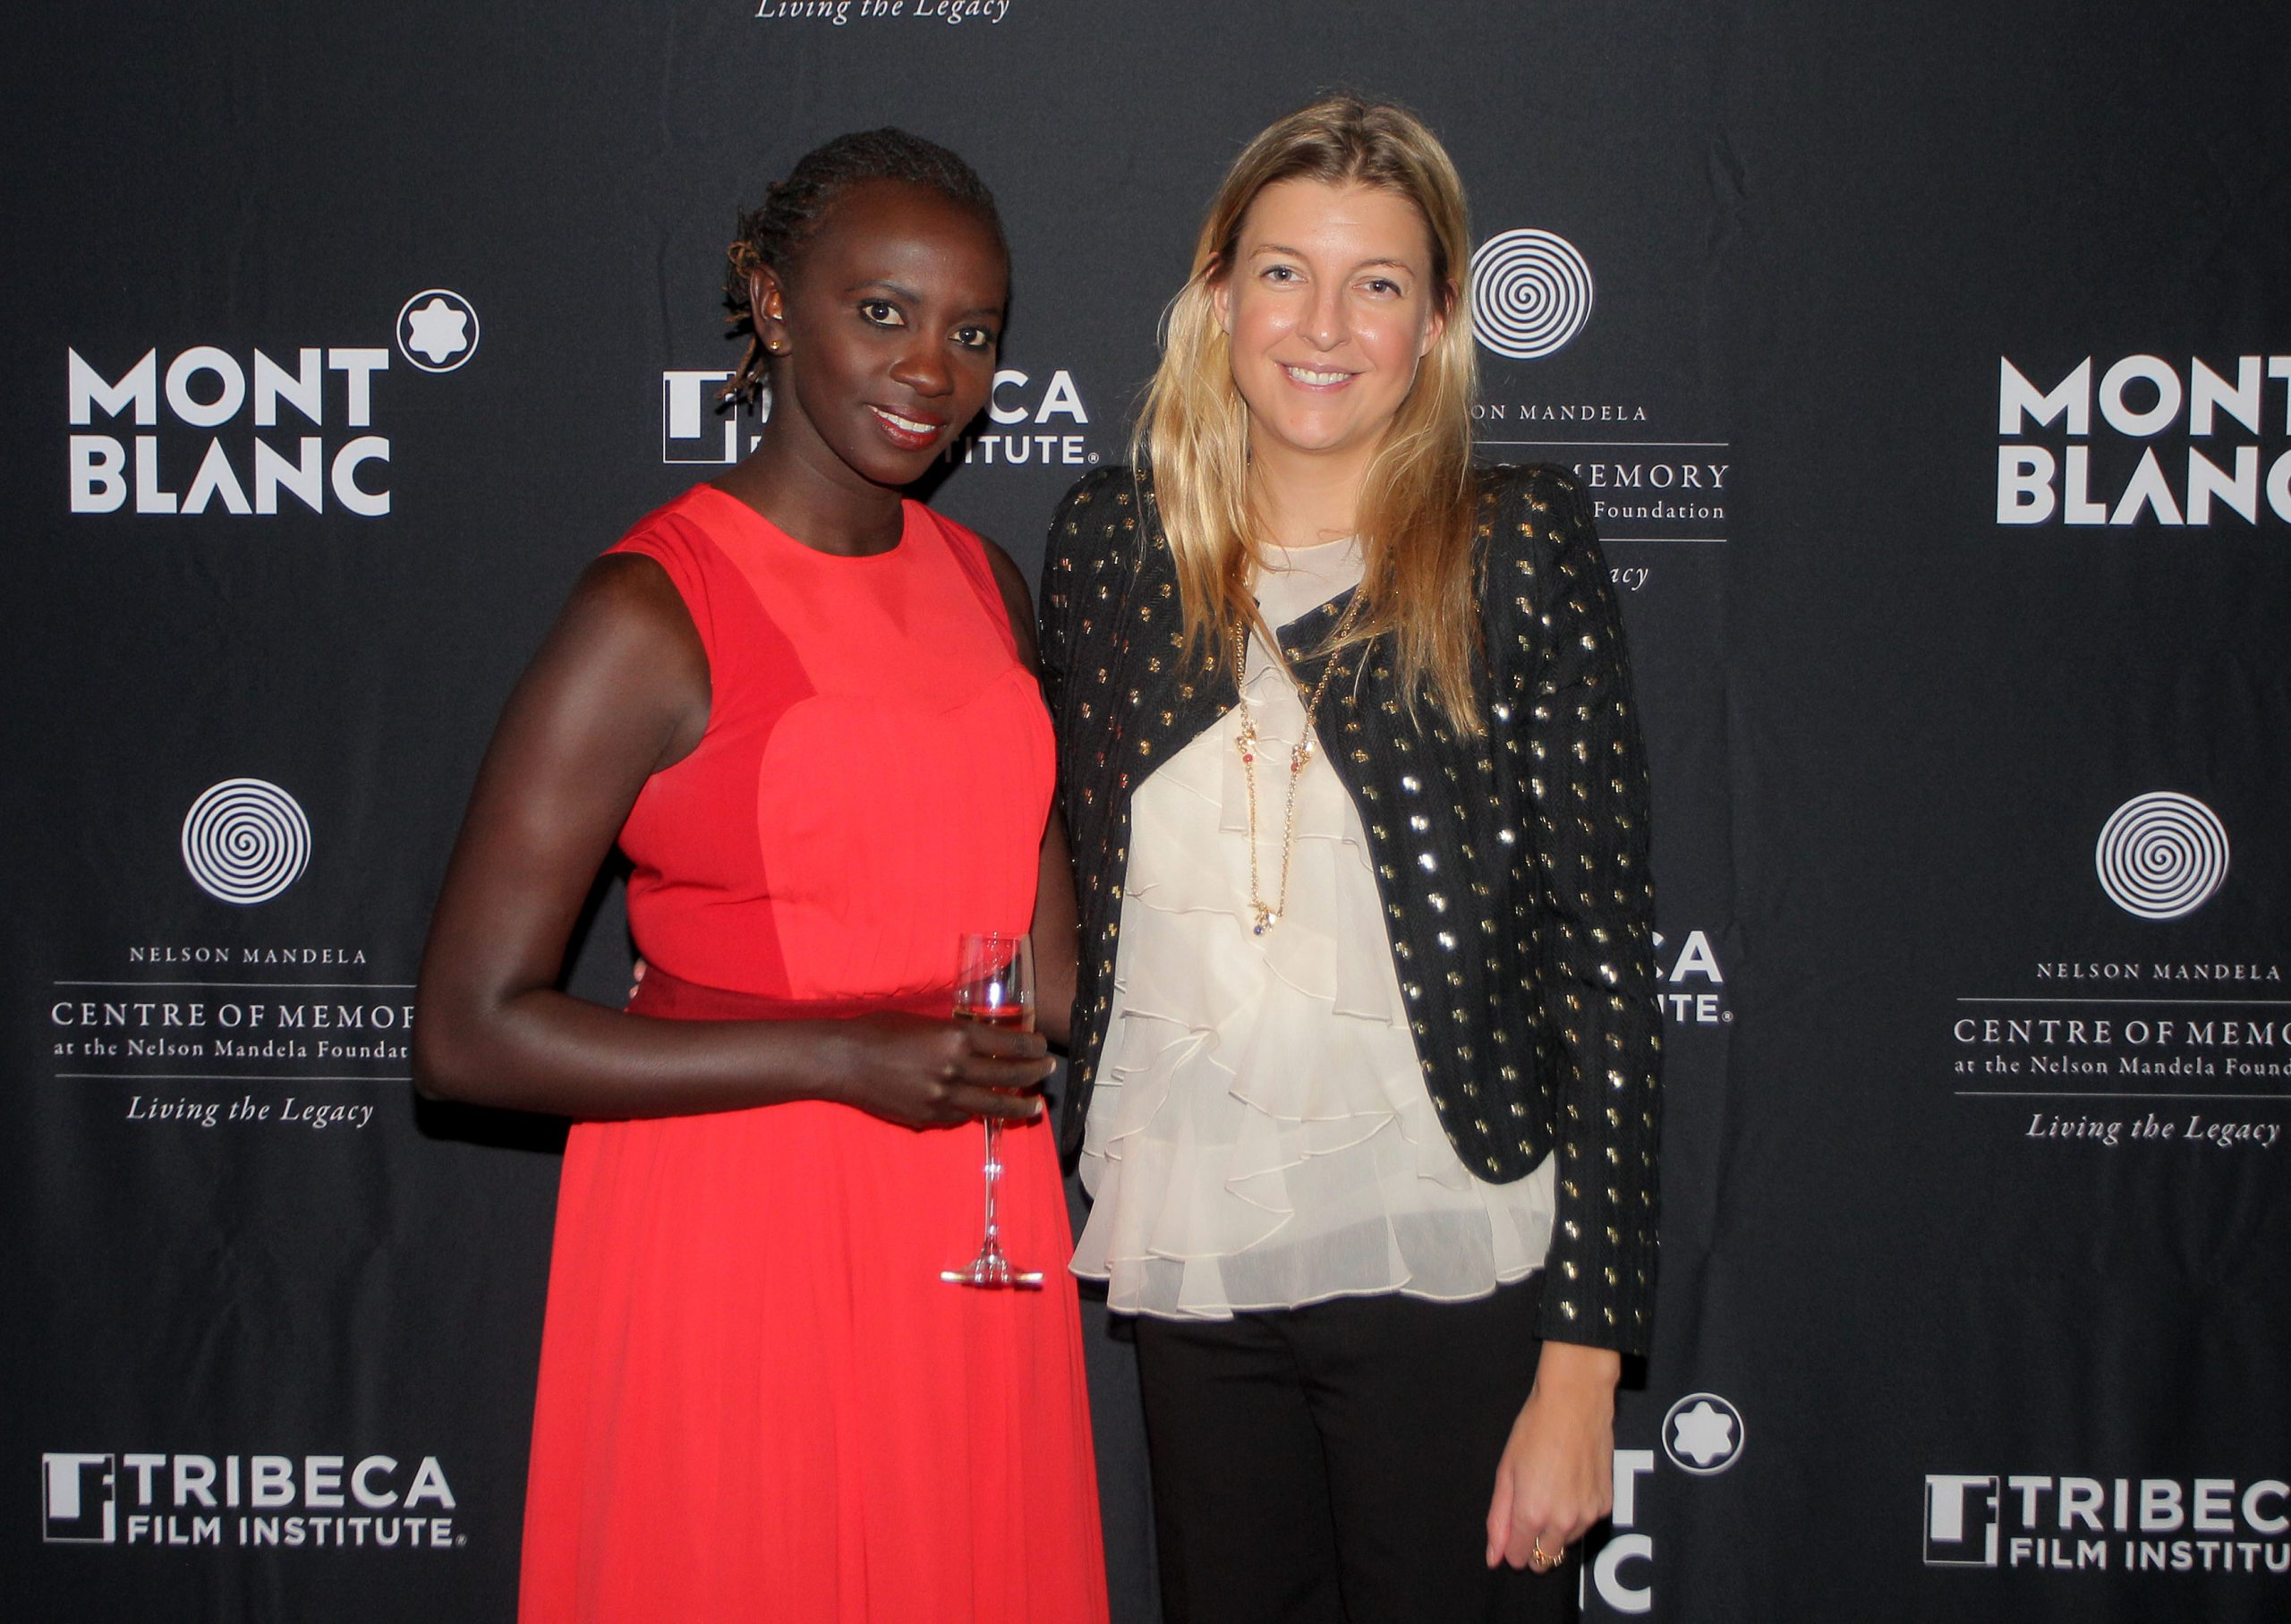 Montblanc hosts power of words film [Nelson Mandela Tribute]